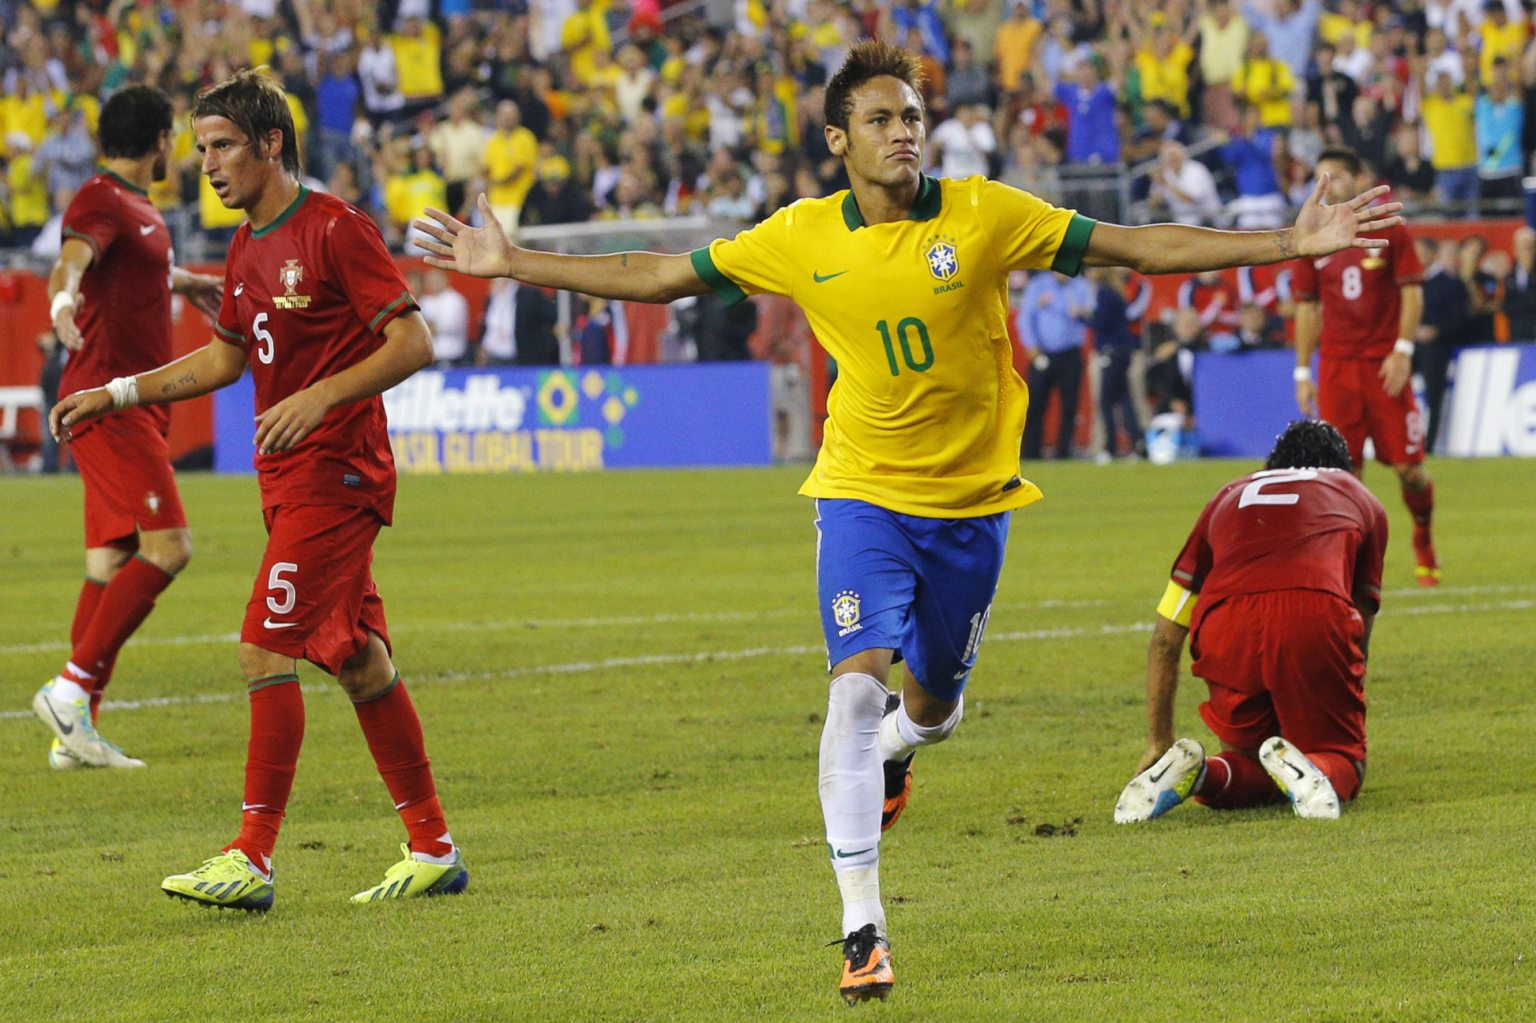 Brazil 3-1 Portugal: Neymar dismantled the Portuguese NT